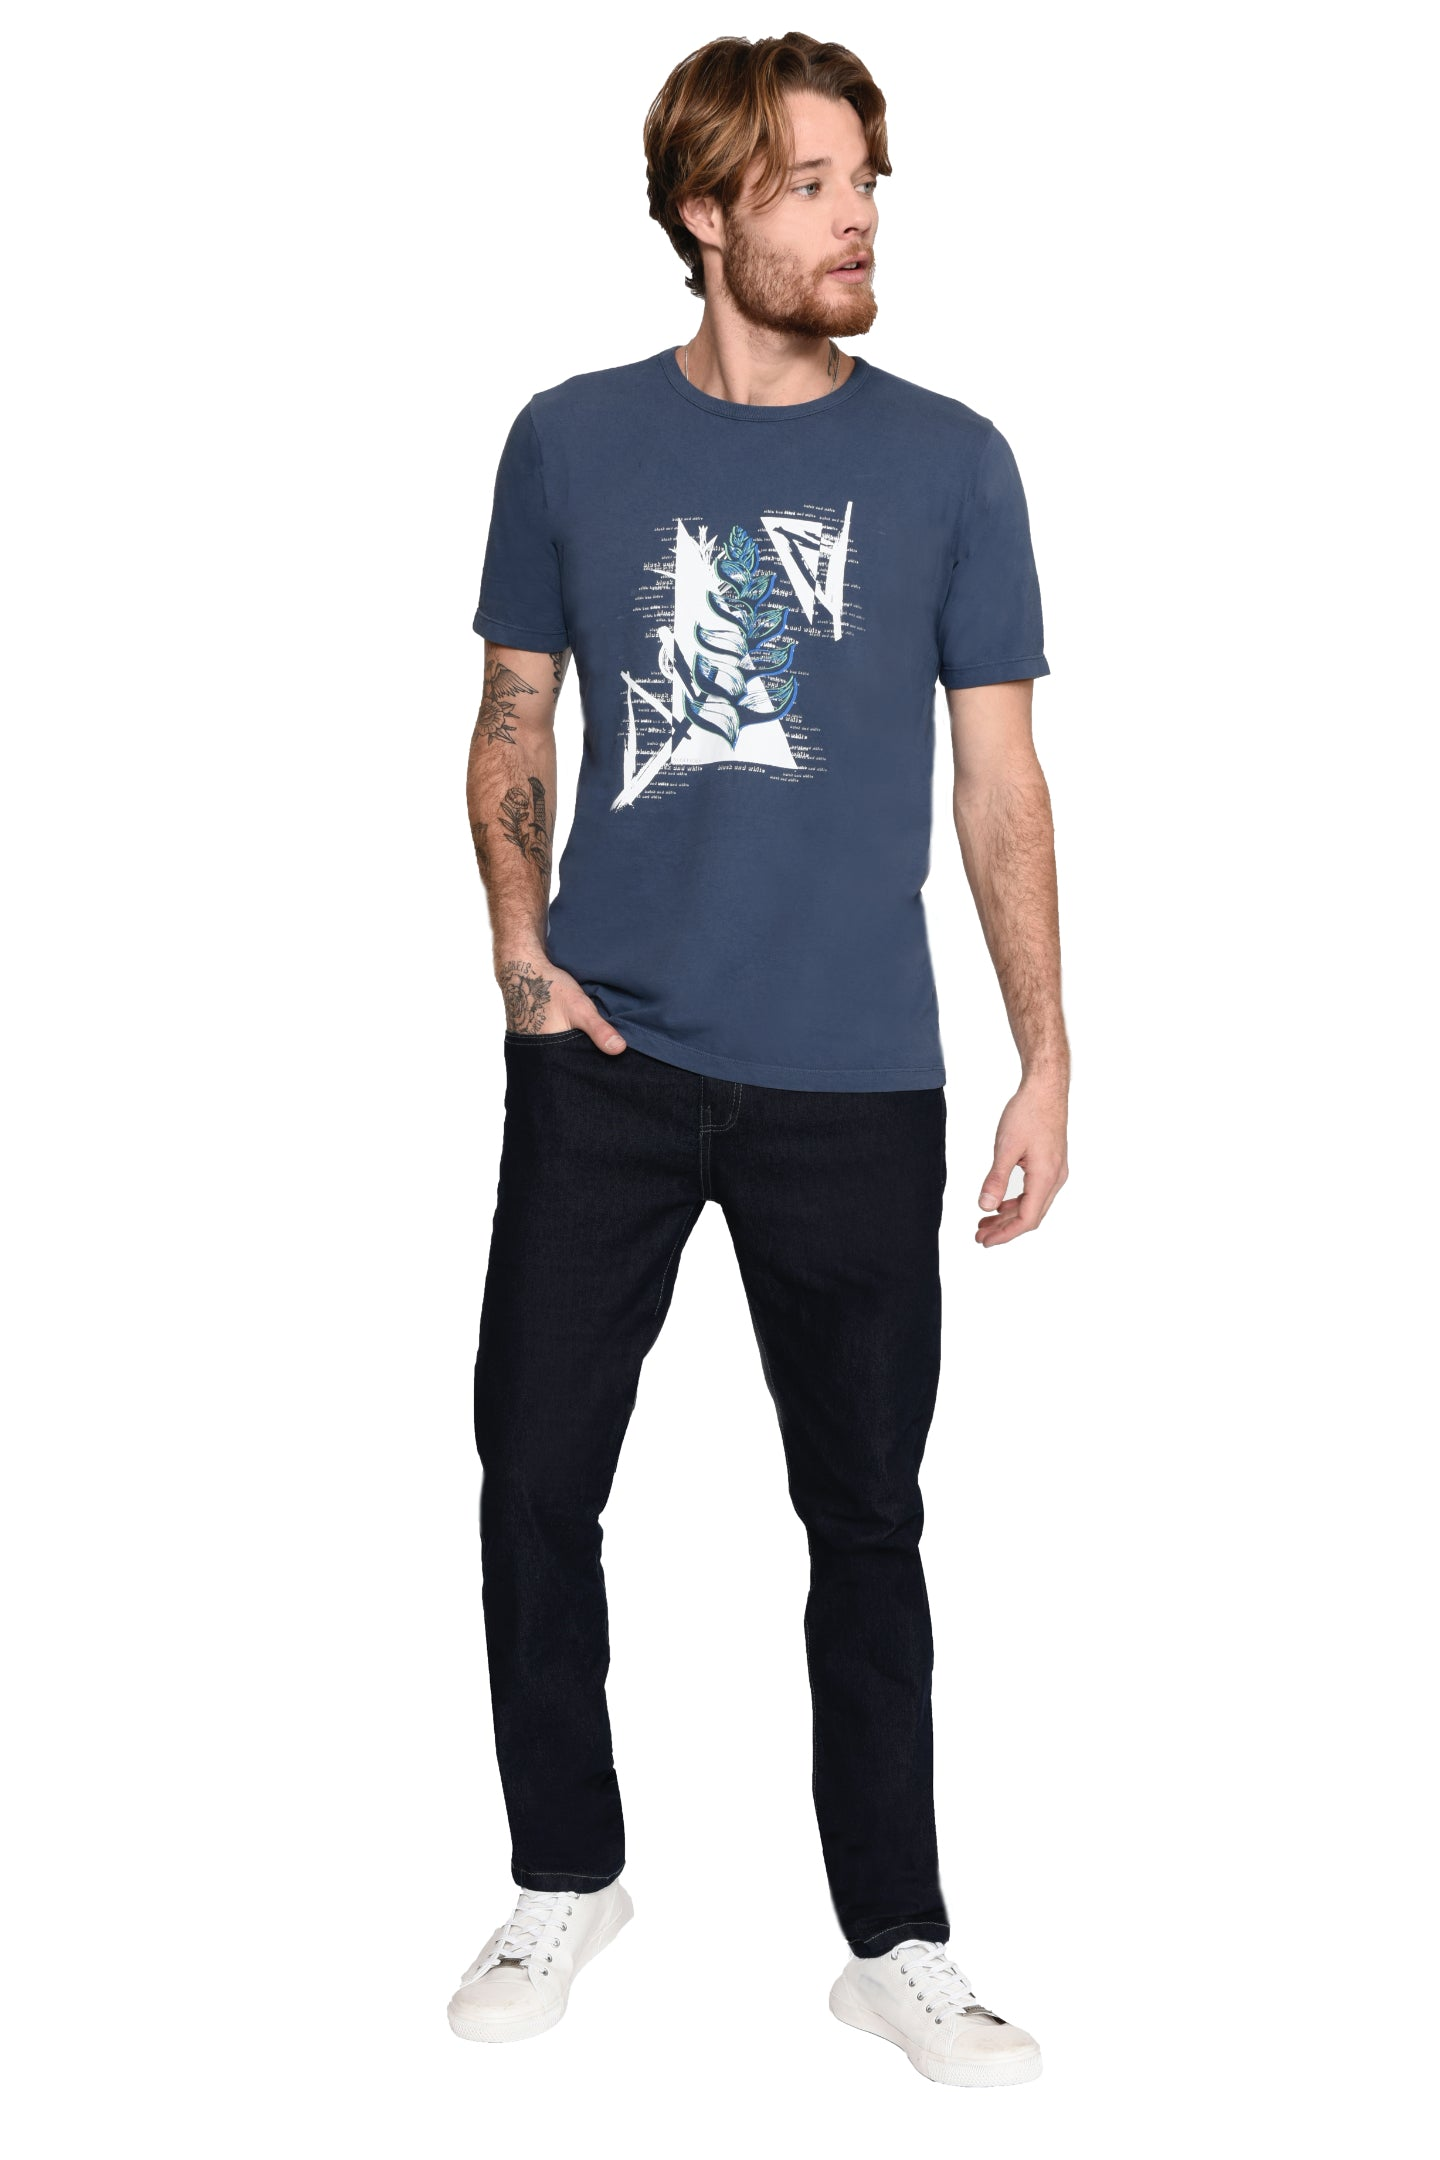 CAMISETA SLIM M/C GOLA SILK BLACK WHITE